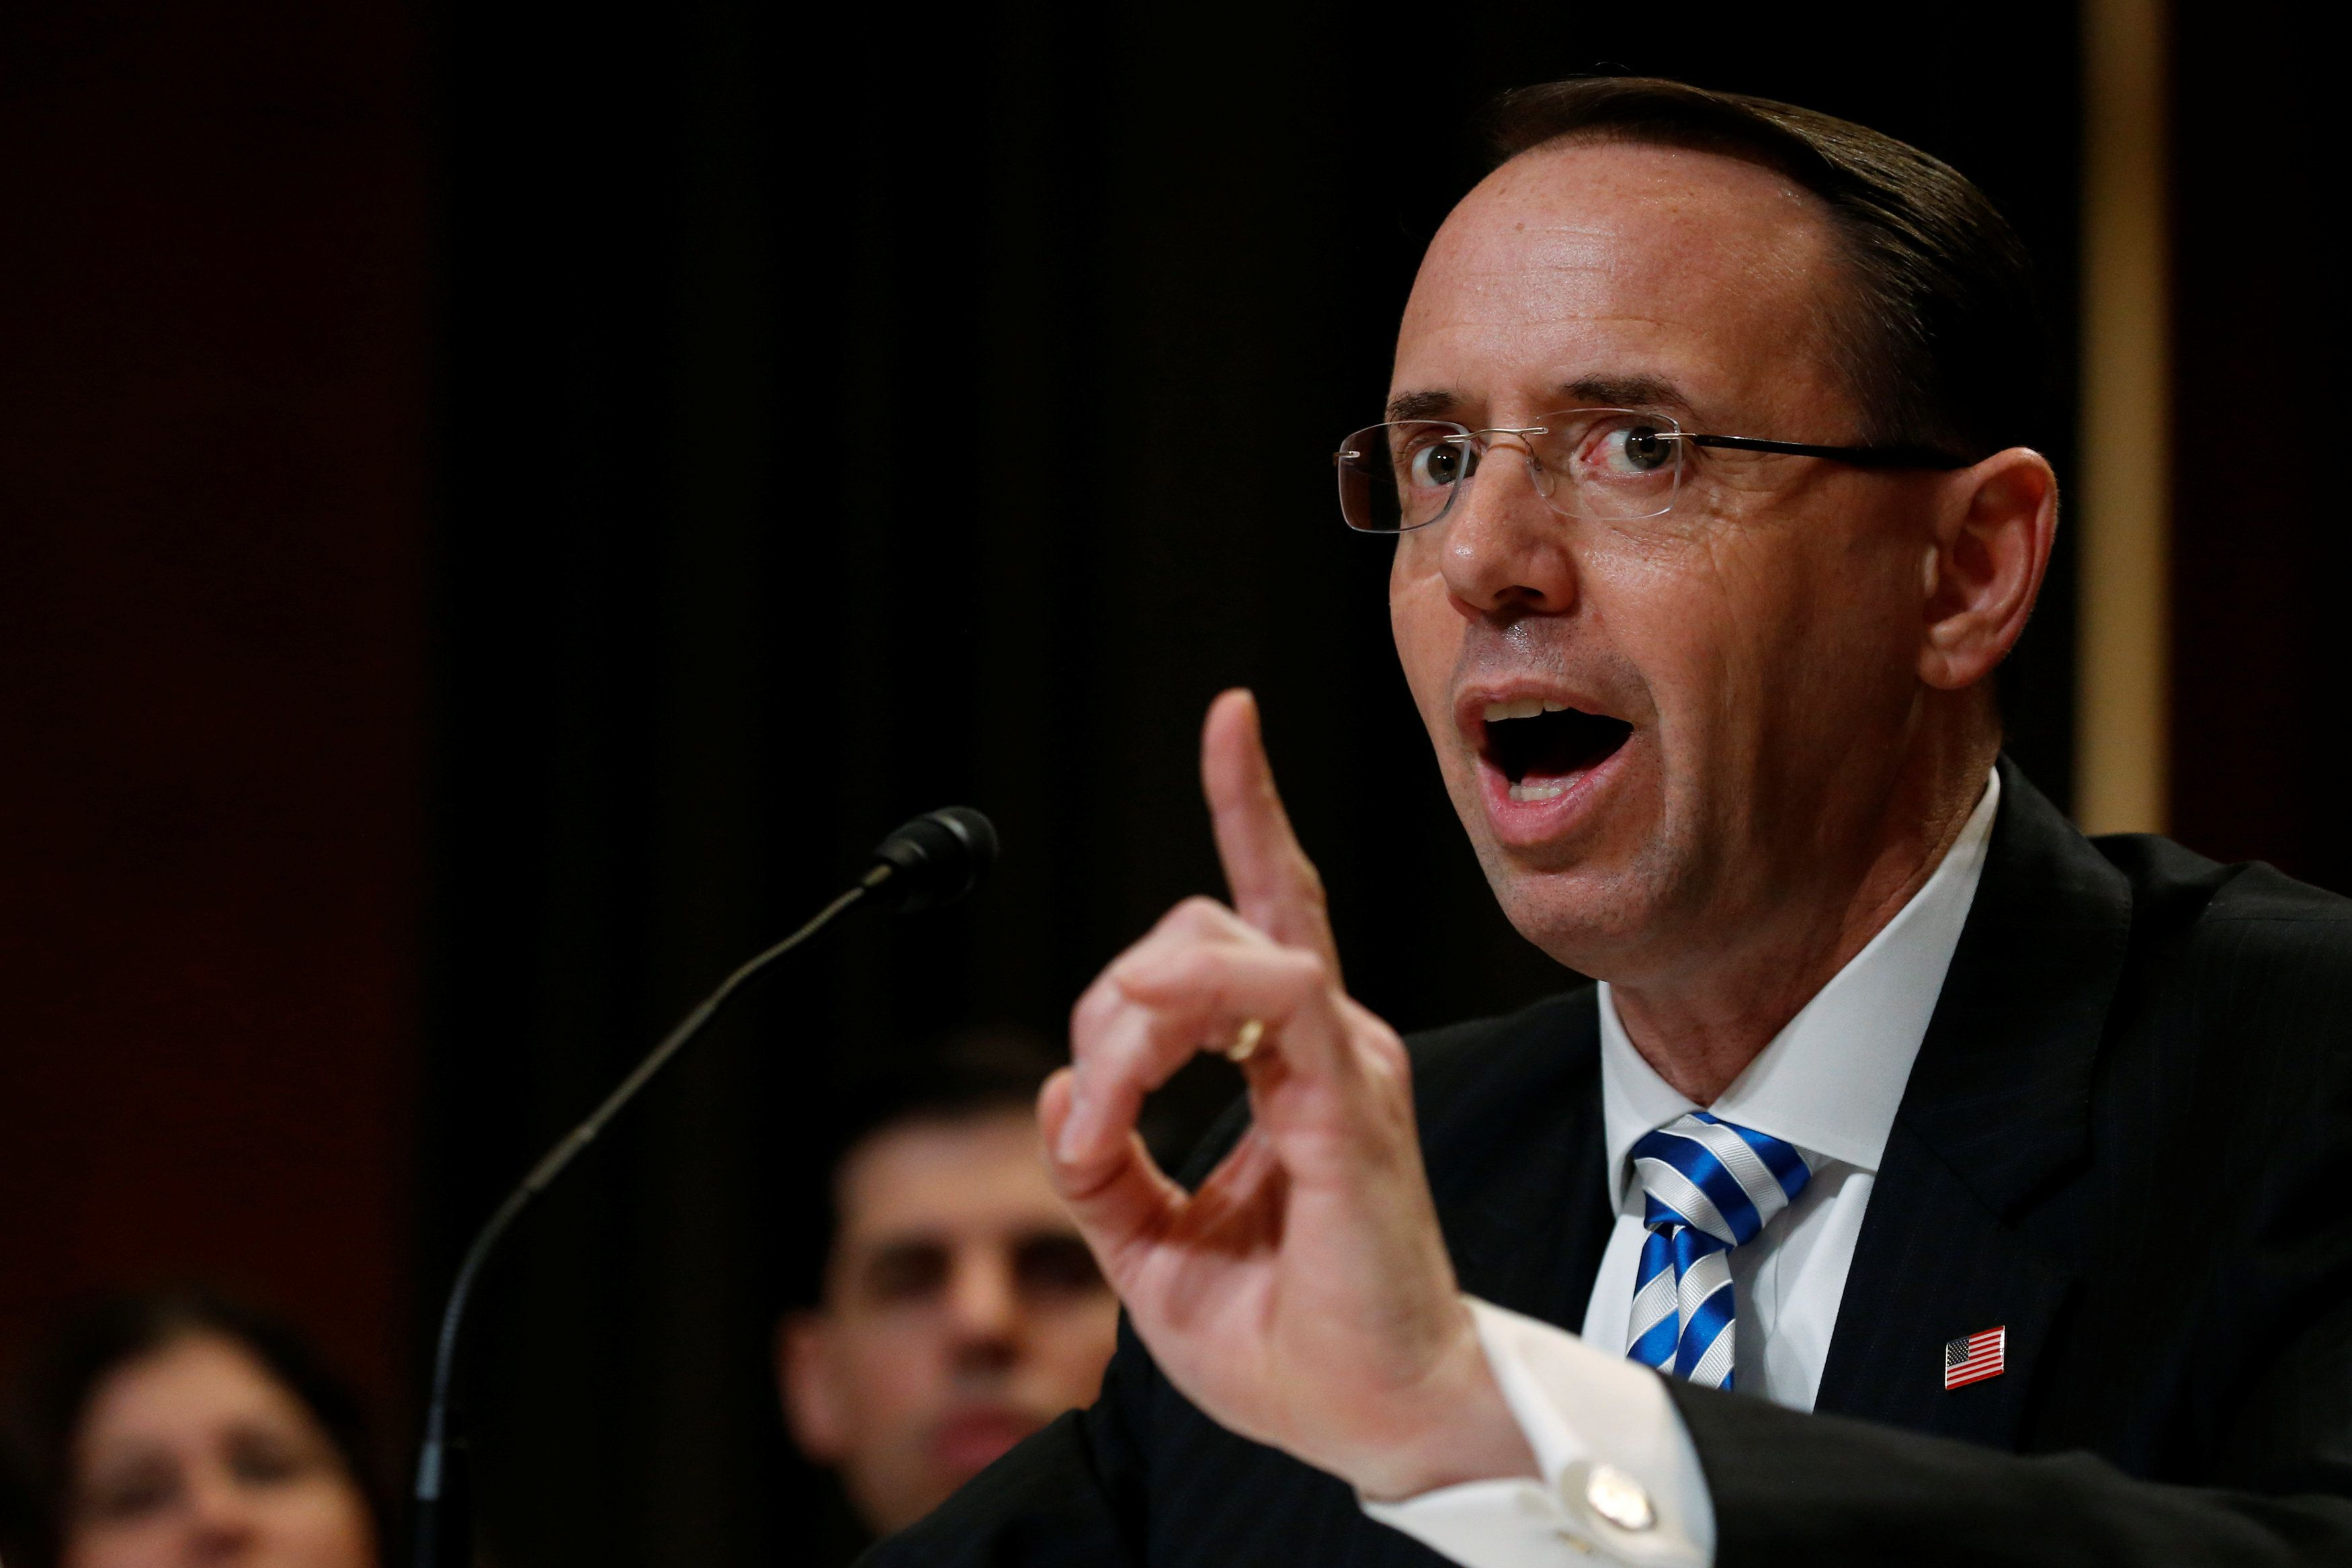 Deputy U.S. Attorney General Rod Rosenstein testifies about the Justice Department's budget before a subcommittee hearing of